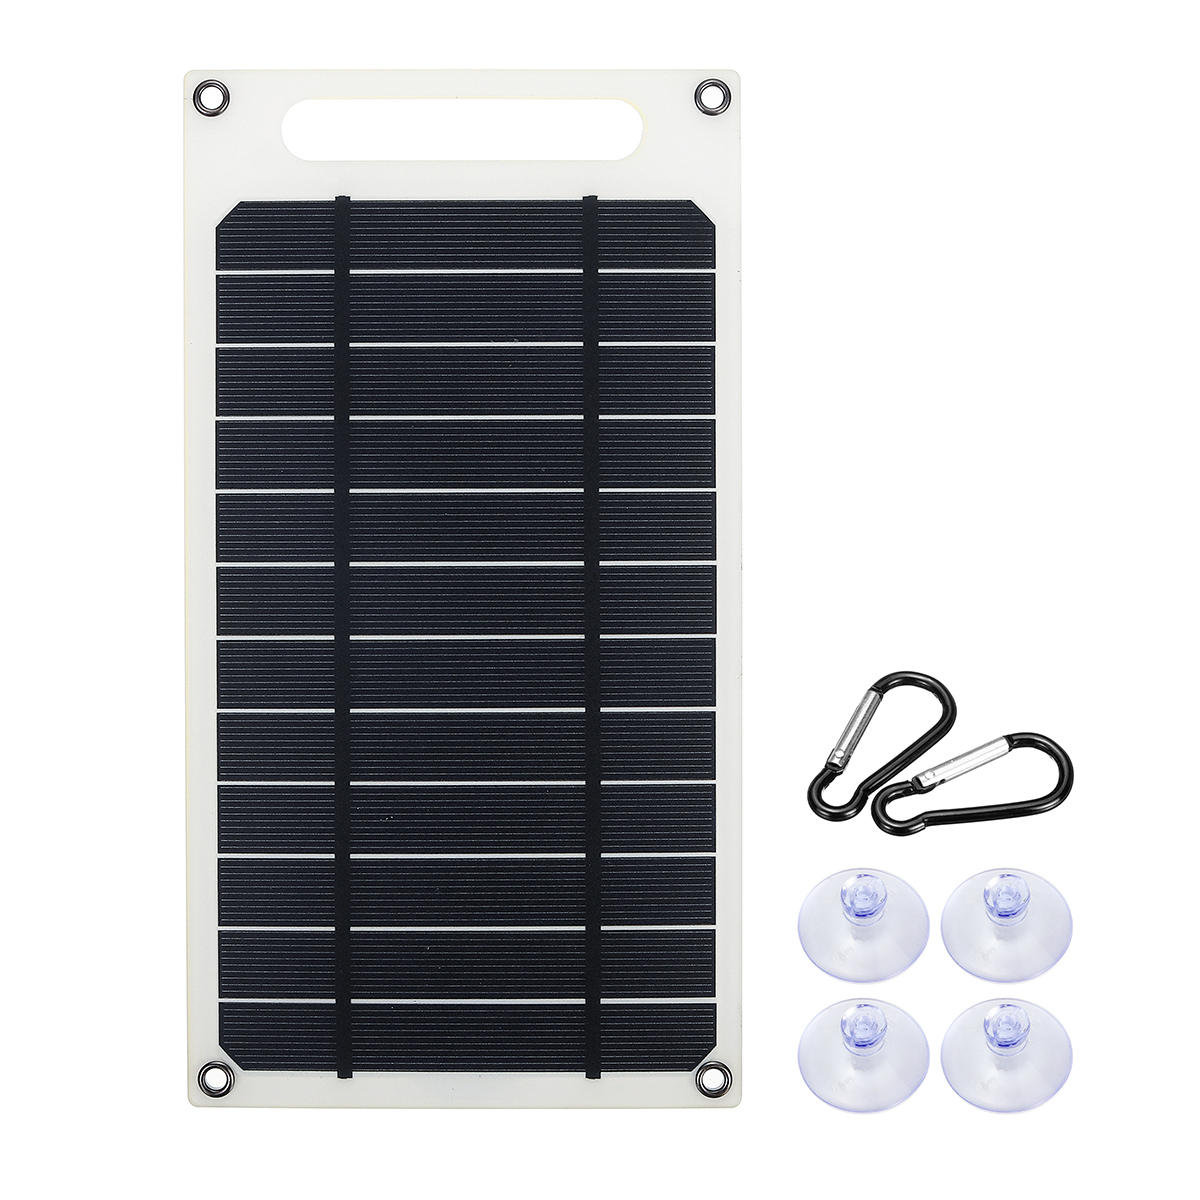 10W 6V 1500mA Monocrystalline Solar Panel USB Mobile Phone Photovoltaic Charging Power Bank